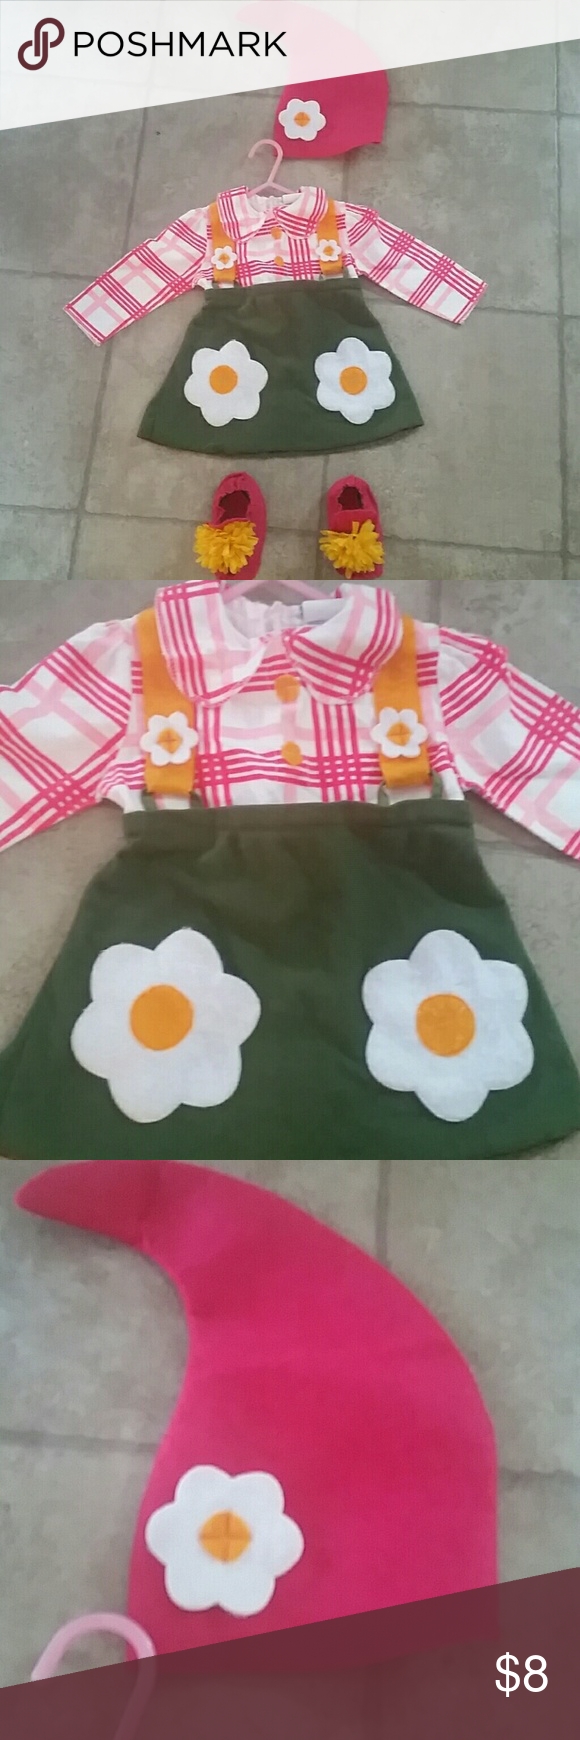 12-18 Mos GNOME Costume OMG Shop no more for your toddler!!! This gnome costume is sure to please(and crack up) your entire neighborhood!!!!! Decorate that fairy garden(wagon) and get out your gardening gloves mama, were ready to trick-or-treat!!! Felt dress, hat and shoe covers(I added the yellow mums to match) held up great after Halloween and 2 washings. Wore with gold tights. You will LOVE IT! Costumes Halloween #gnomecostume